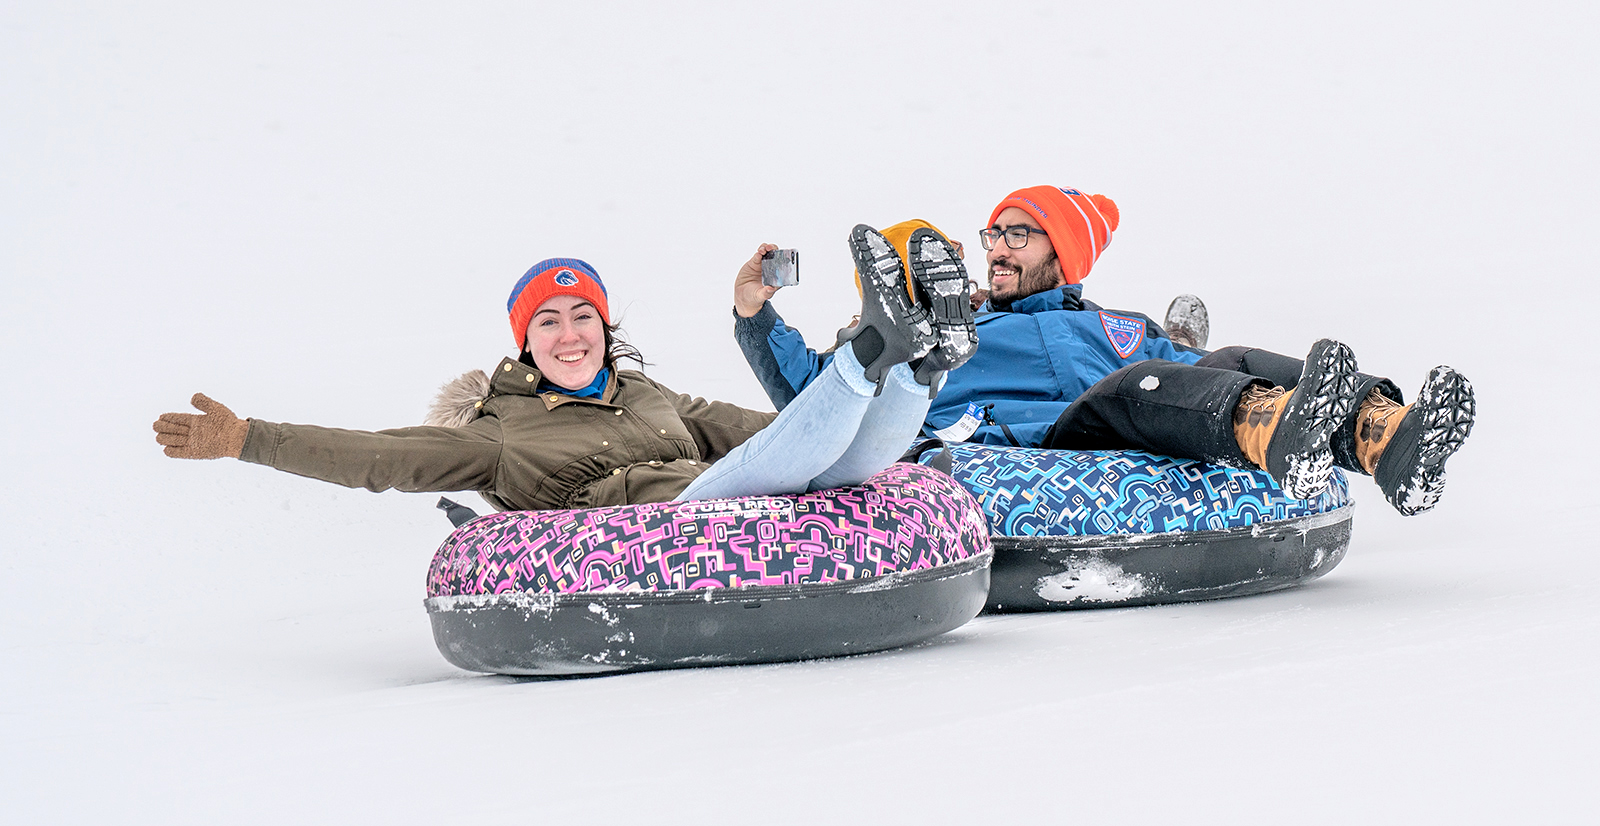 Students on inner tubes in the snow